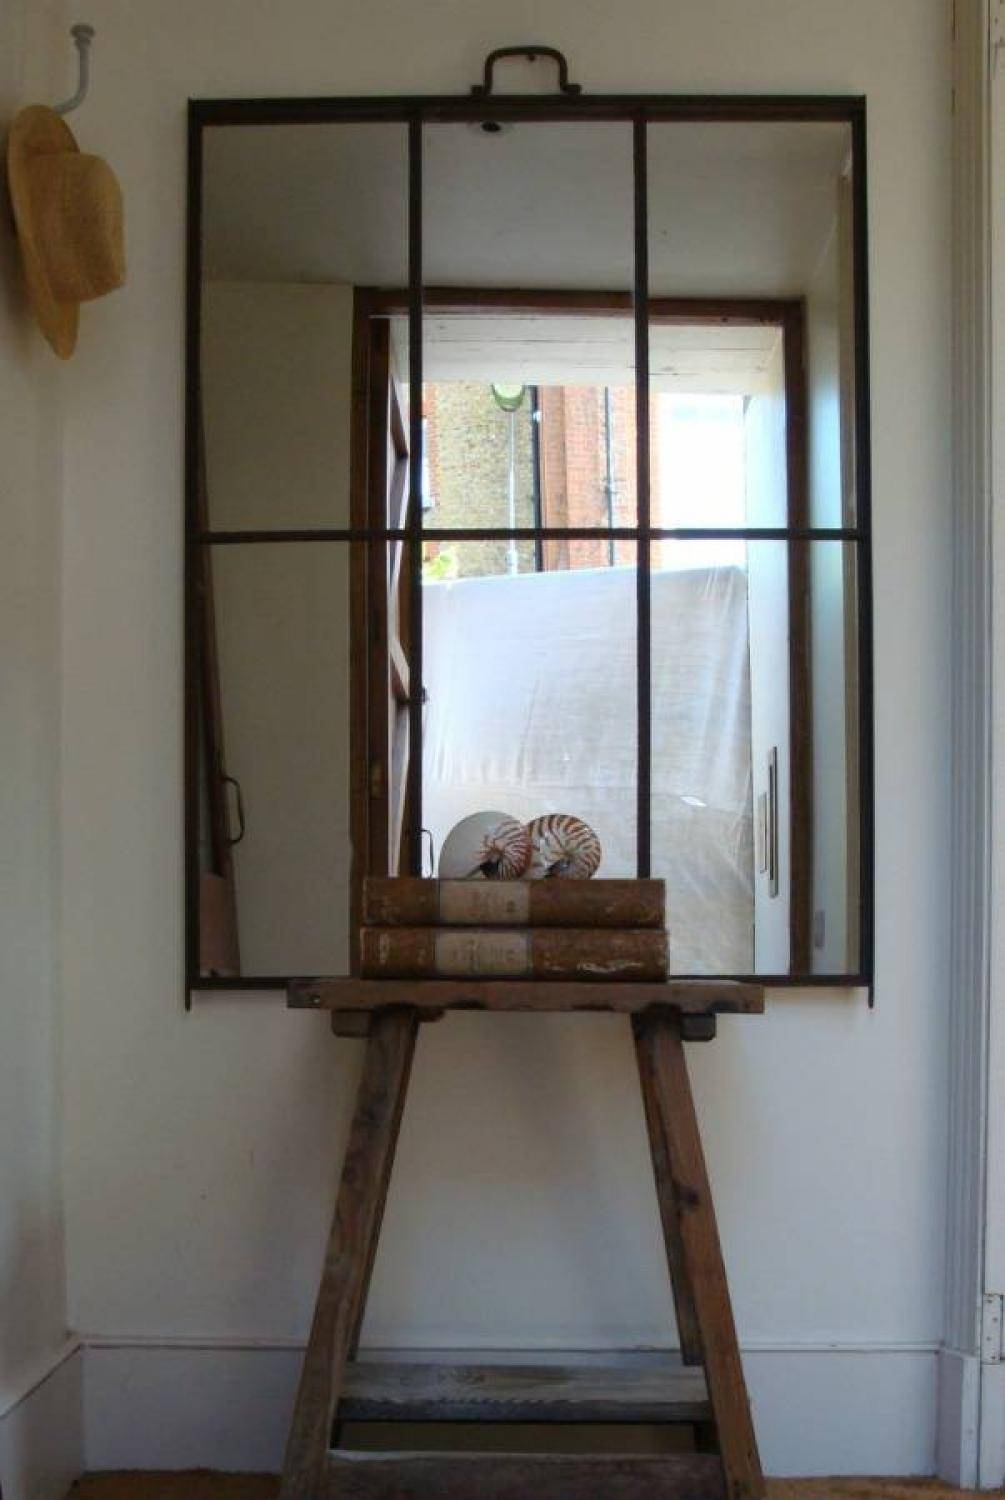 French Iron Framed Mirror With 6 Panels In Garden inside Iron Framed Mirrors (Image 10 of 25)